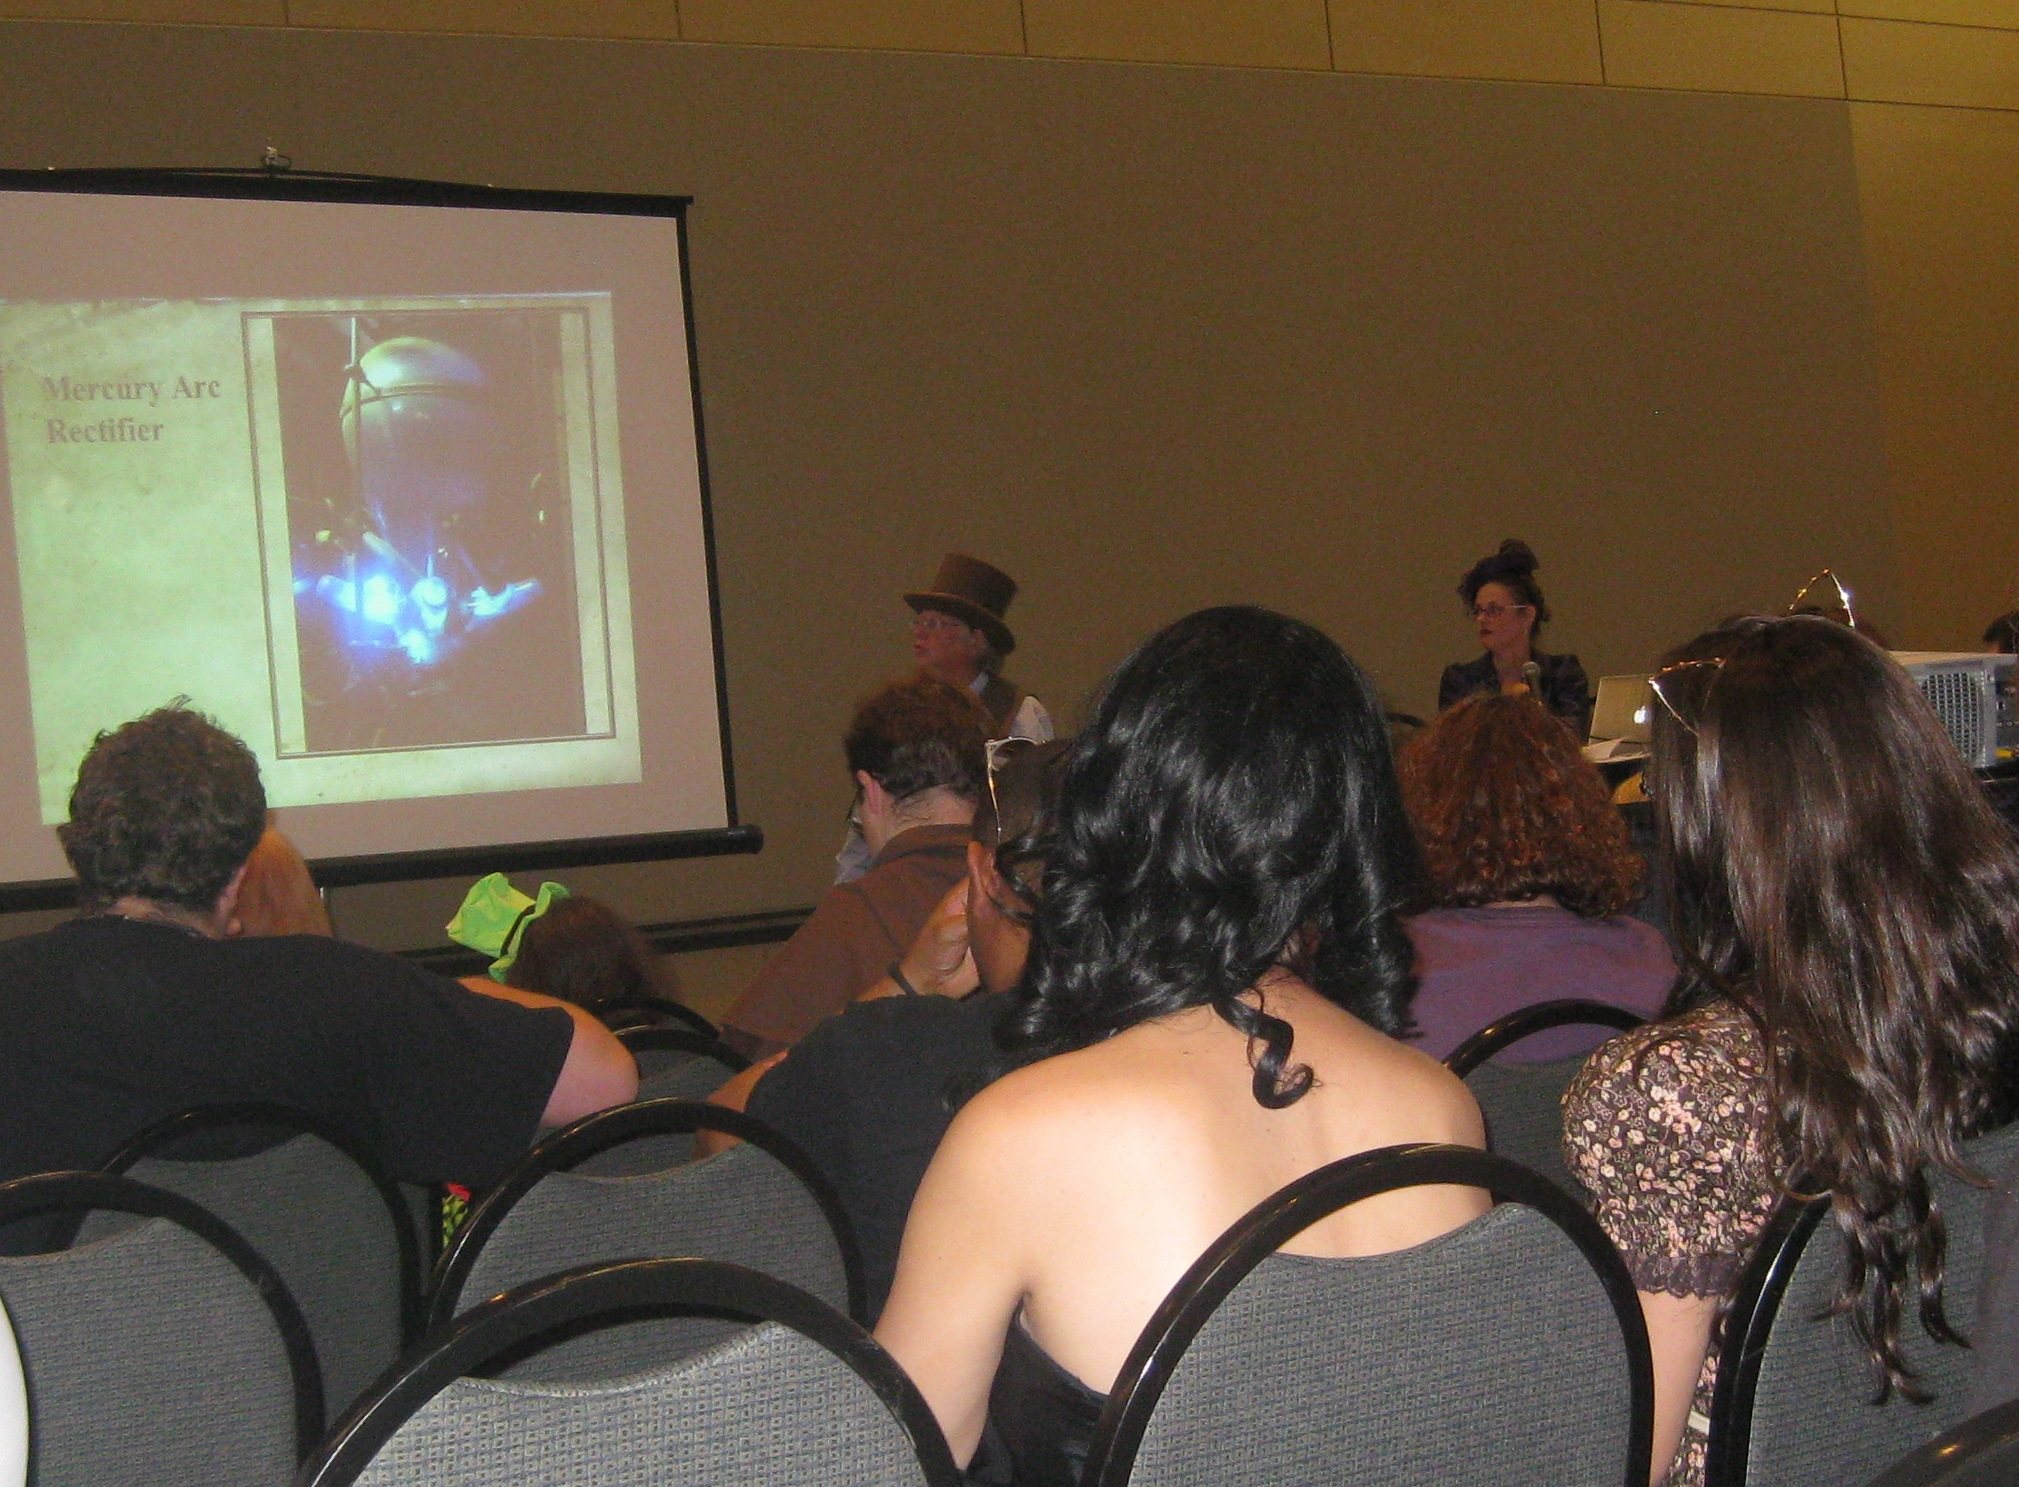 At Connecticon 2015